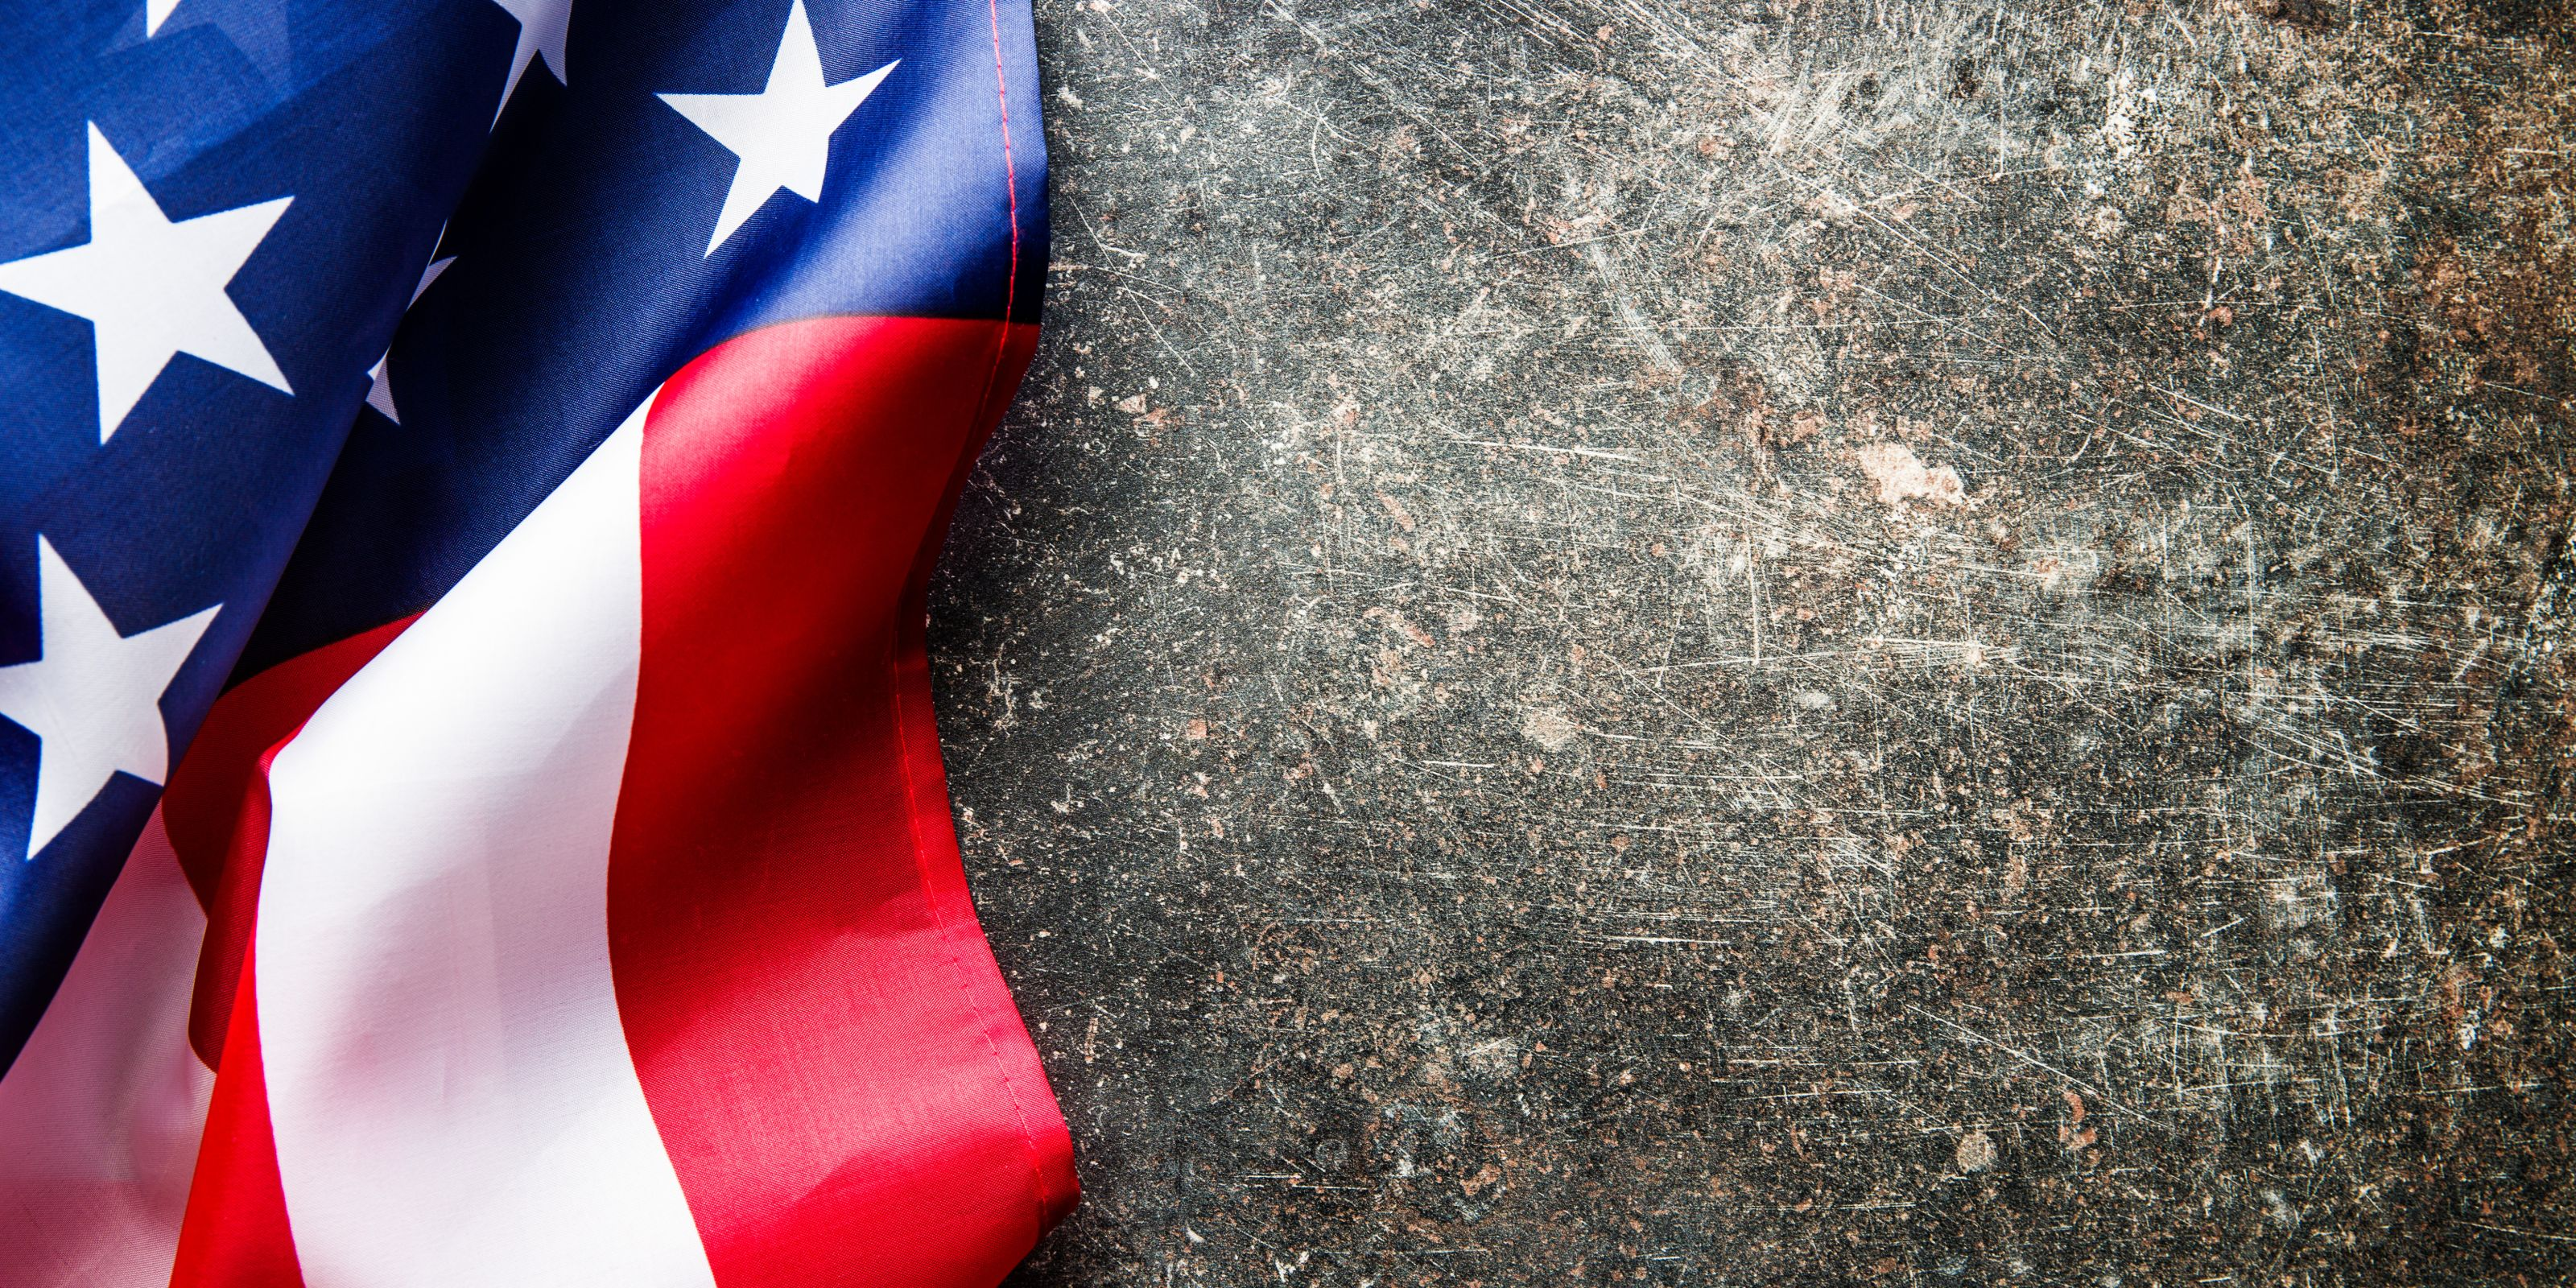 A picture of a section of the american flag on a dark grey background on the US PR agency page.